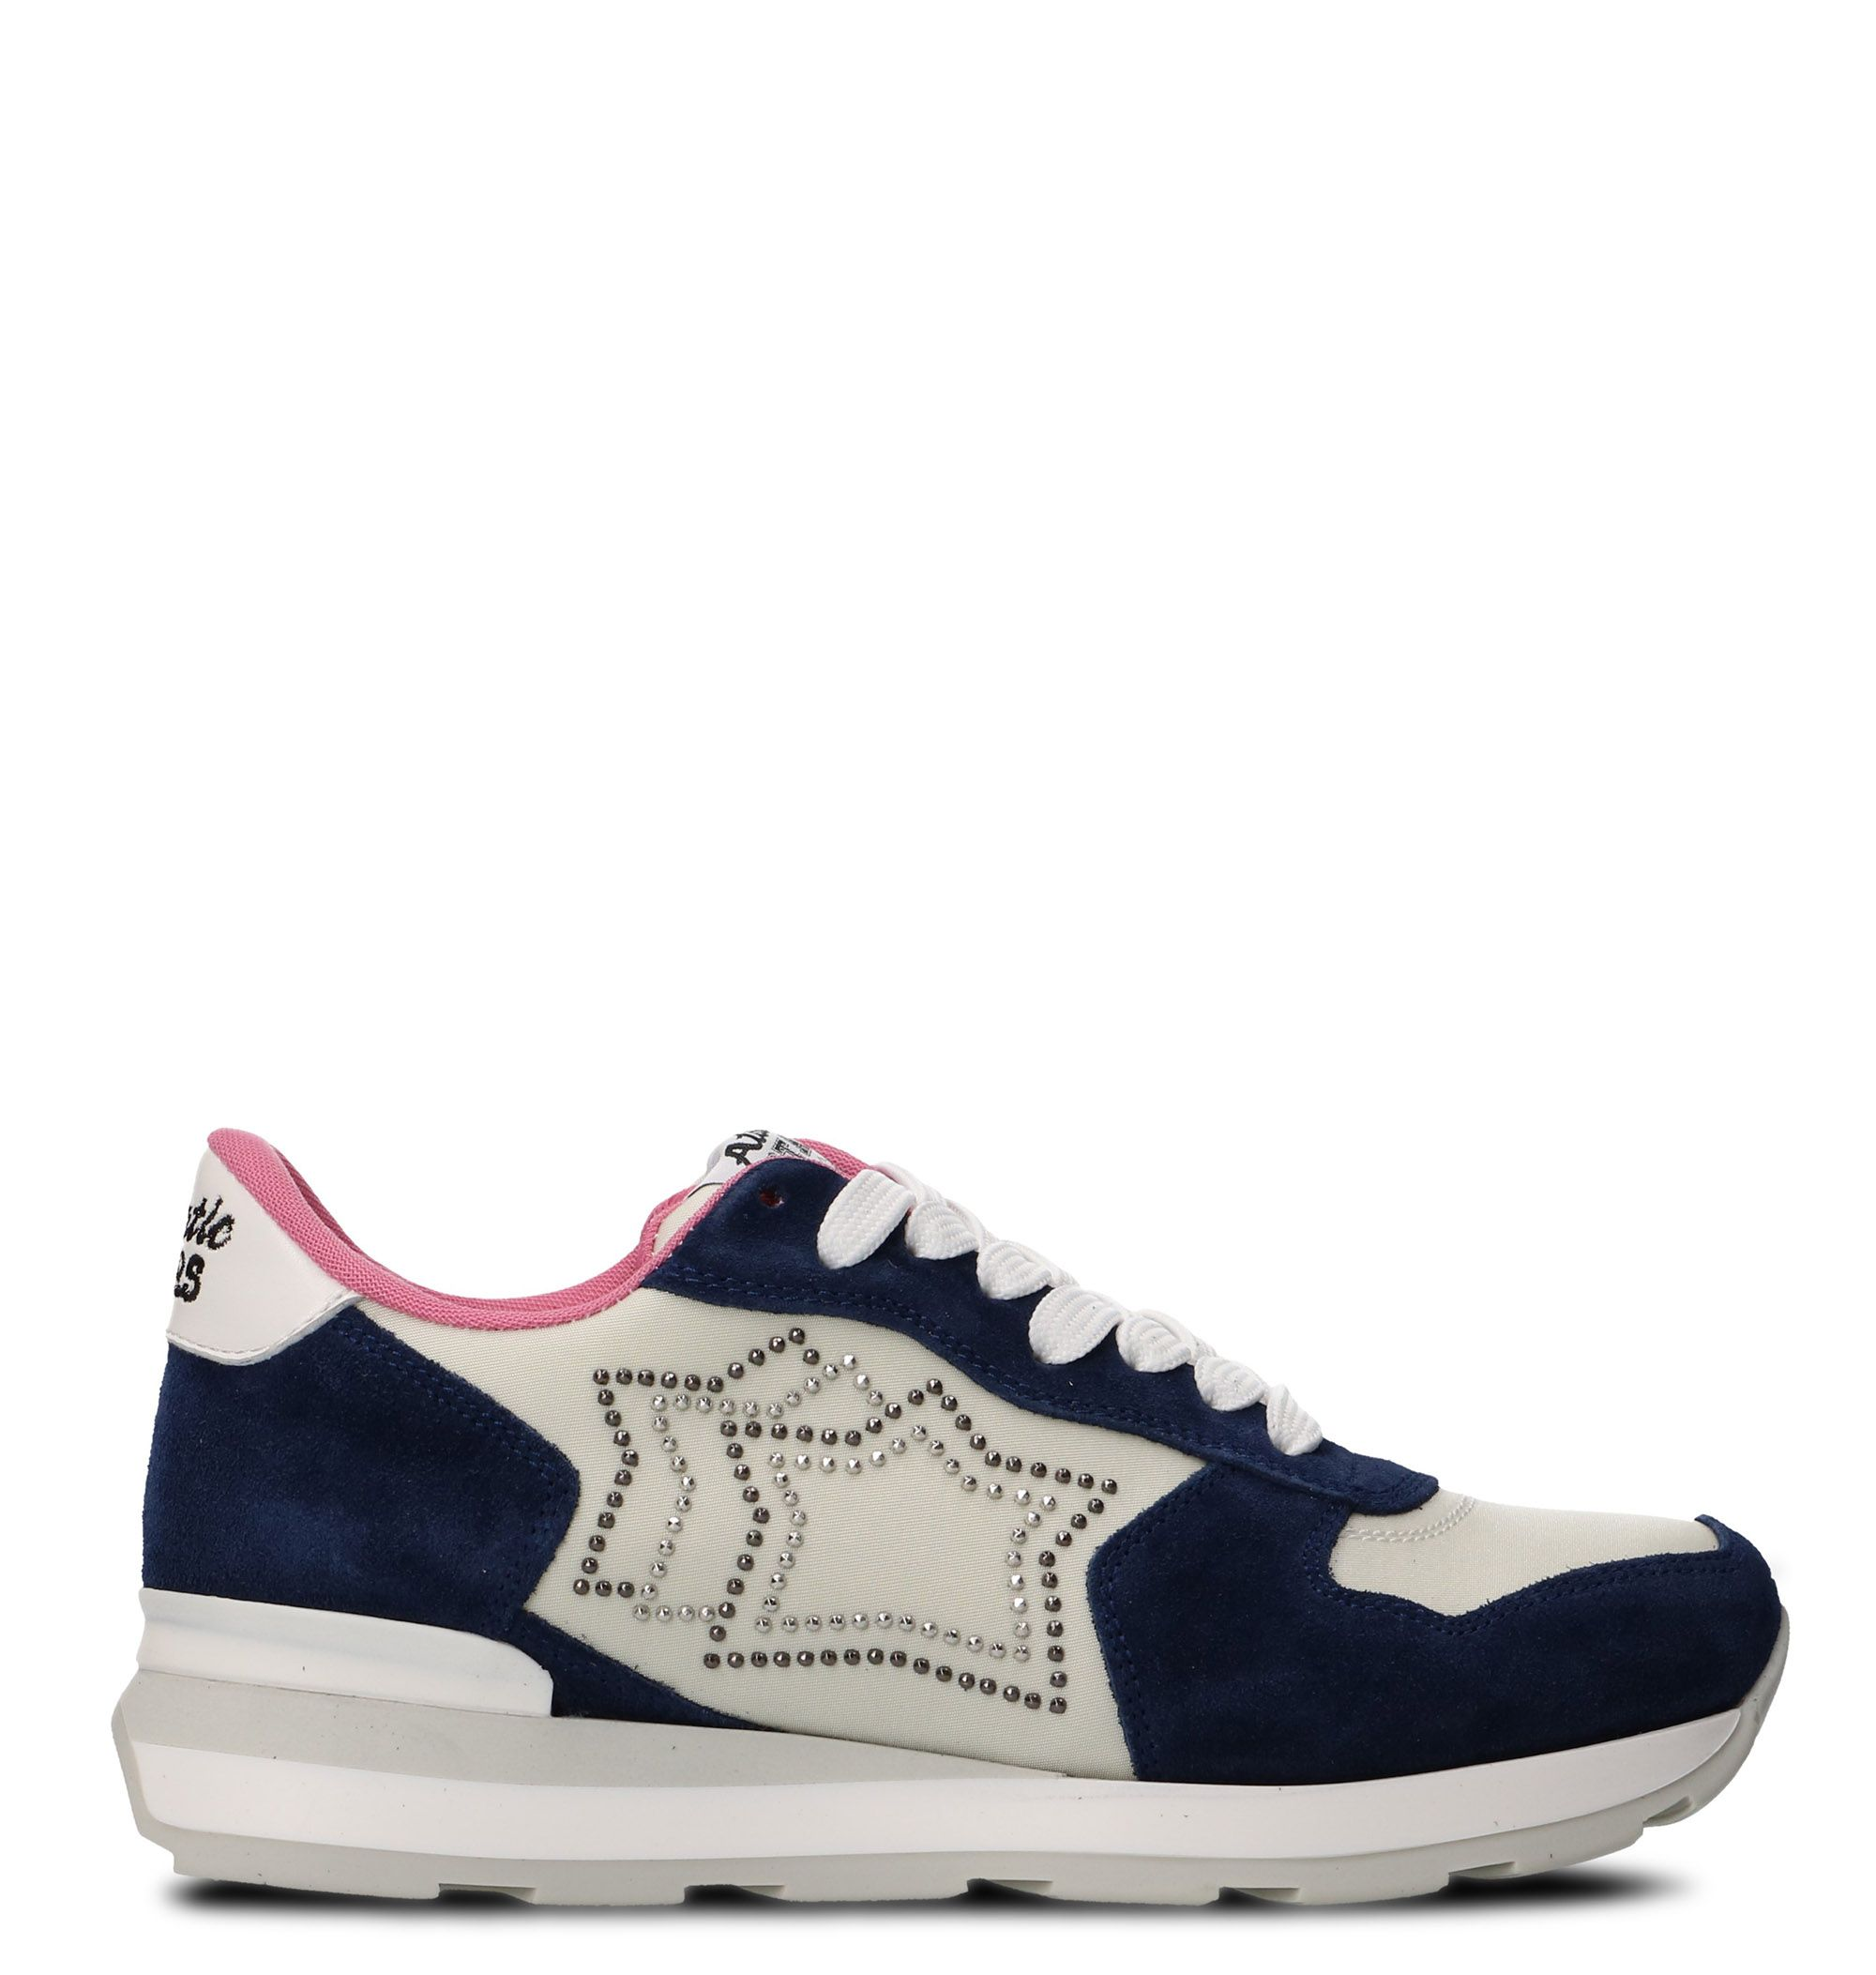 Atlantic Stars White/blue Leather Sneakers